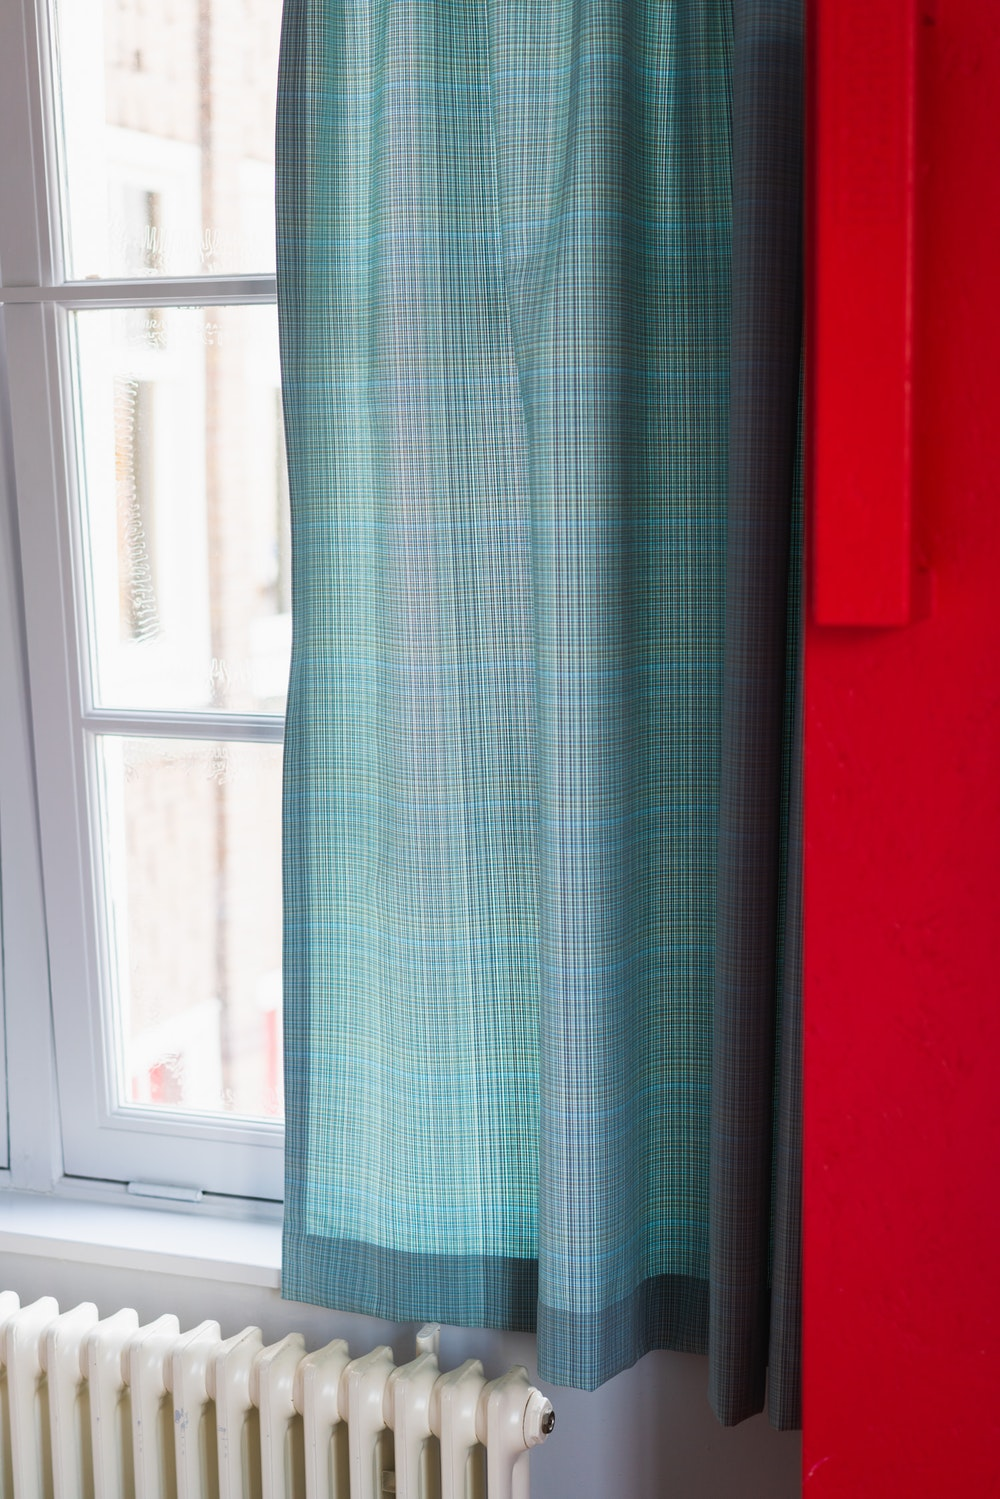 Curtains on a window in a hotel room